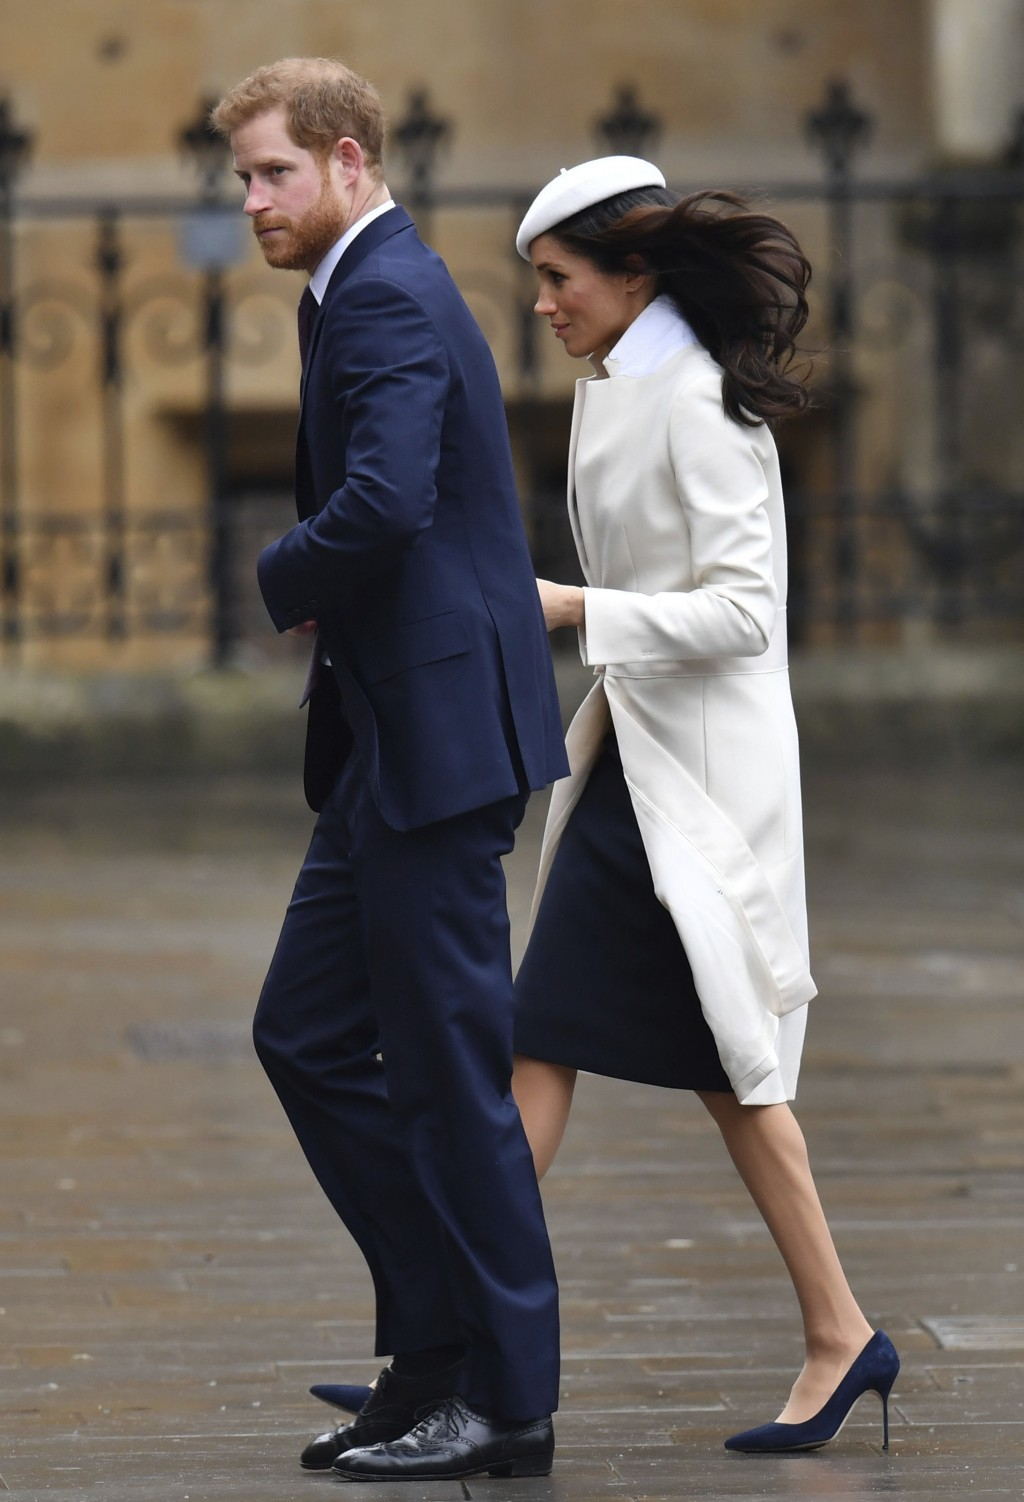 Britain's Prince Harry and Meghan Markle, arrive for the Commonwealth Service at Westminster Abbey in London, Monday March 12, 2018. The service marks